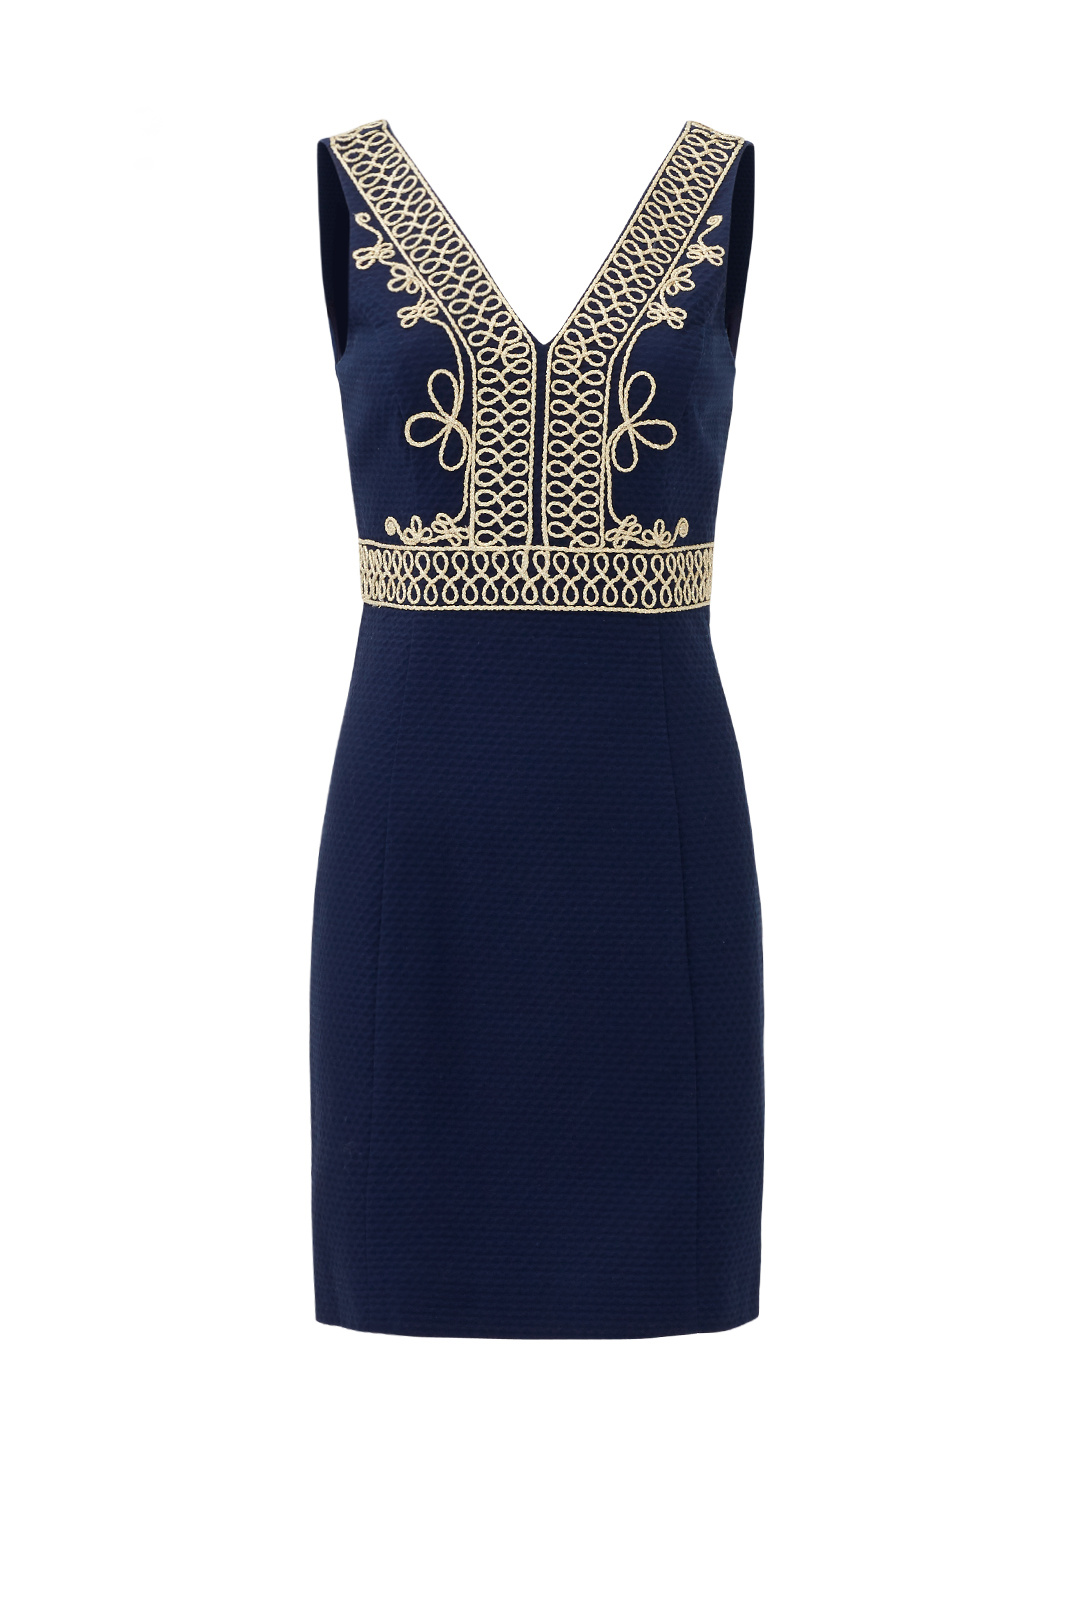 9c3ac8ee1fae5 Details about Lilly Pulitzer Blue Gold Embroidered Navy V-Neck Women 2  Sheath Dress  225-  895